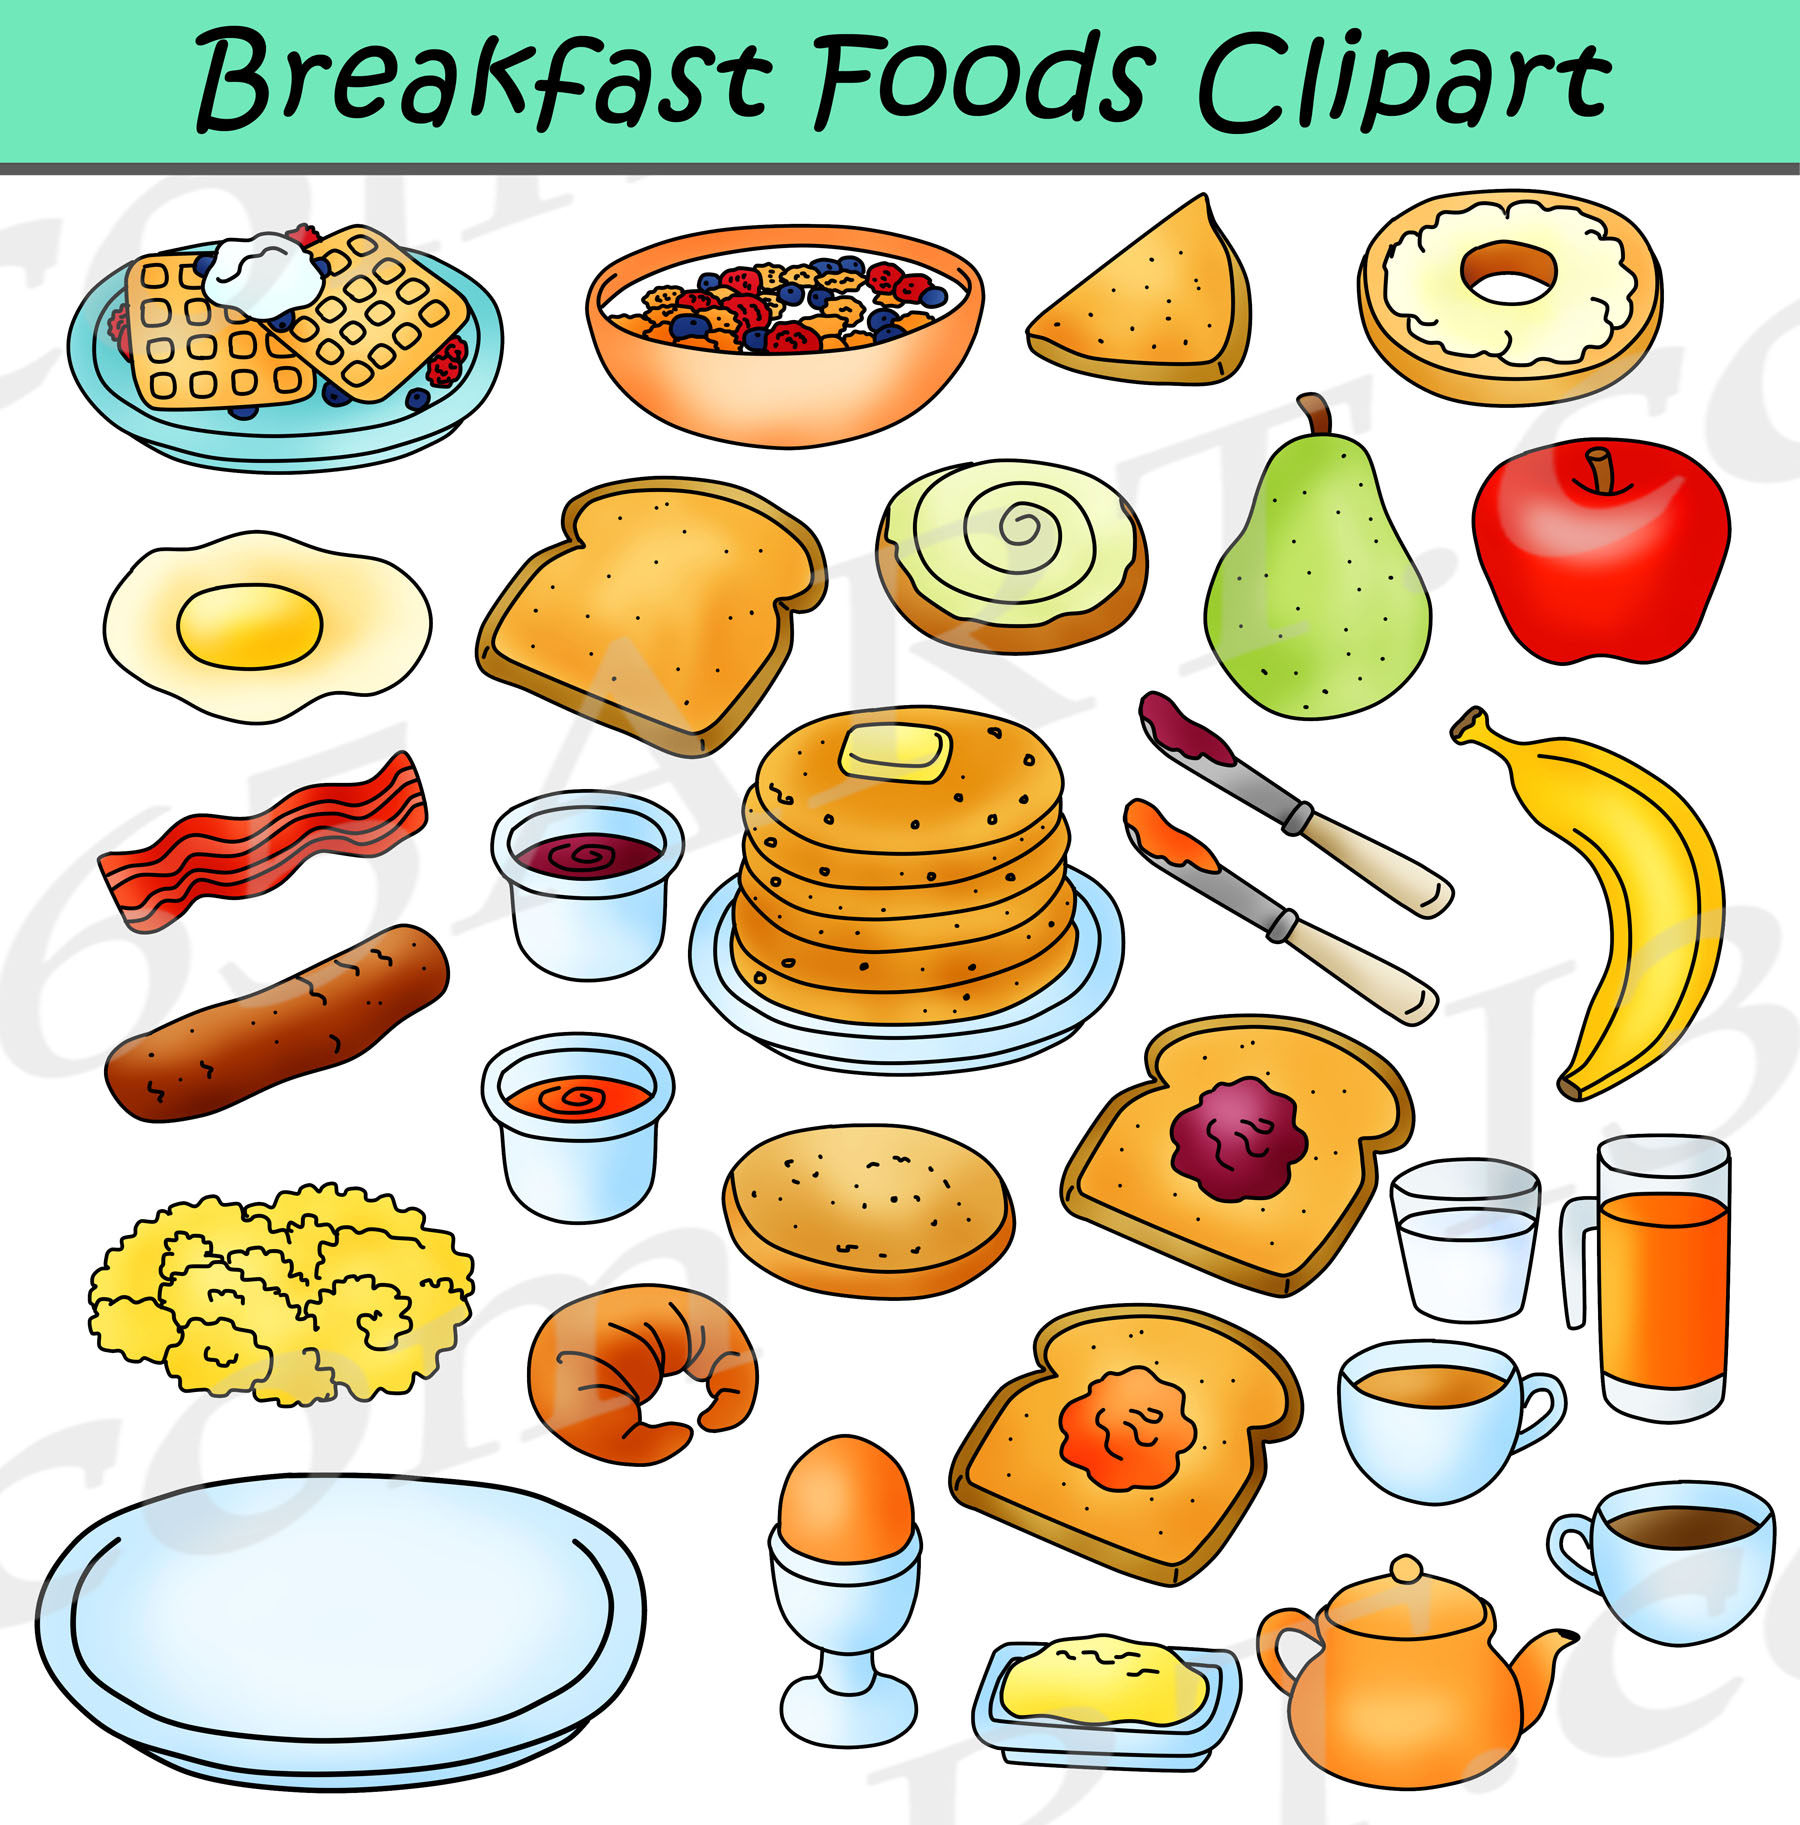 Food graphics clipart banner black and white library Breakfast Foods Clipart Bundle - Breakfast Clipart Graphics banner black and white library